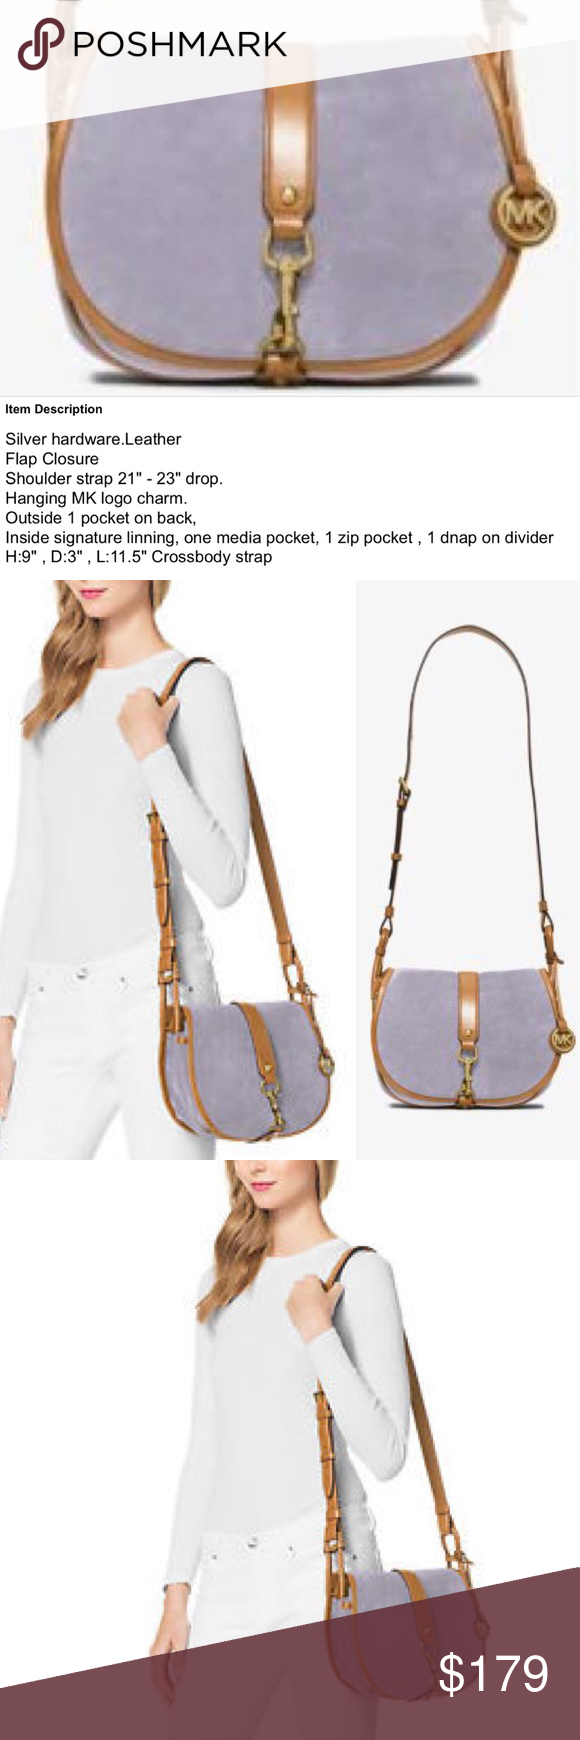 a31b352f84dfc1 Michael Kors Jamie Large Suede Crossbody Messenger Michael Kors Jamie  Saddle Bag Large Suede Crossbody Messenger Lilac Michael Kors Bags  Crossbody Bags